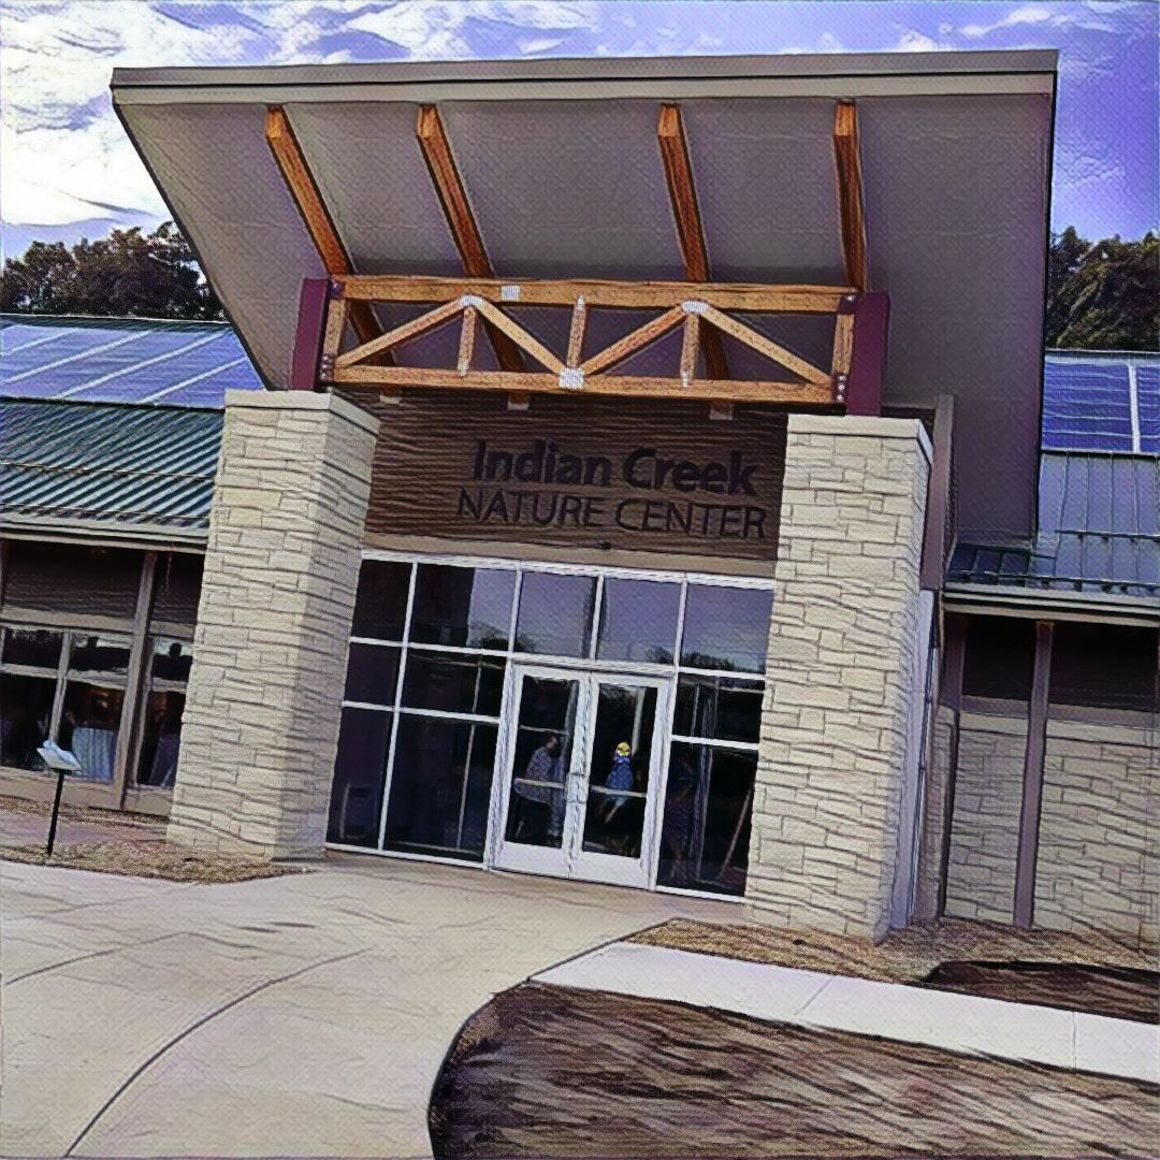 Indian Creek Nature Center: New space, same mission